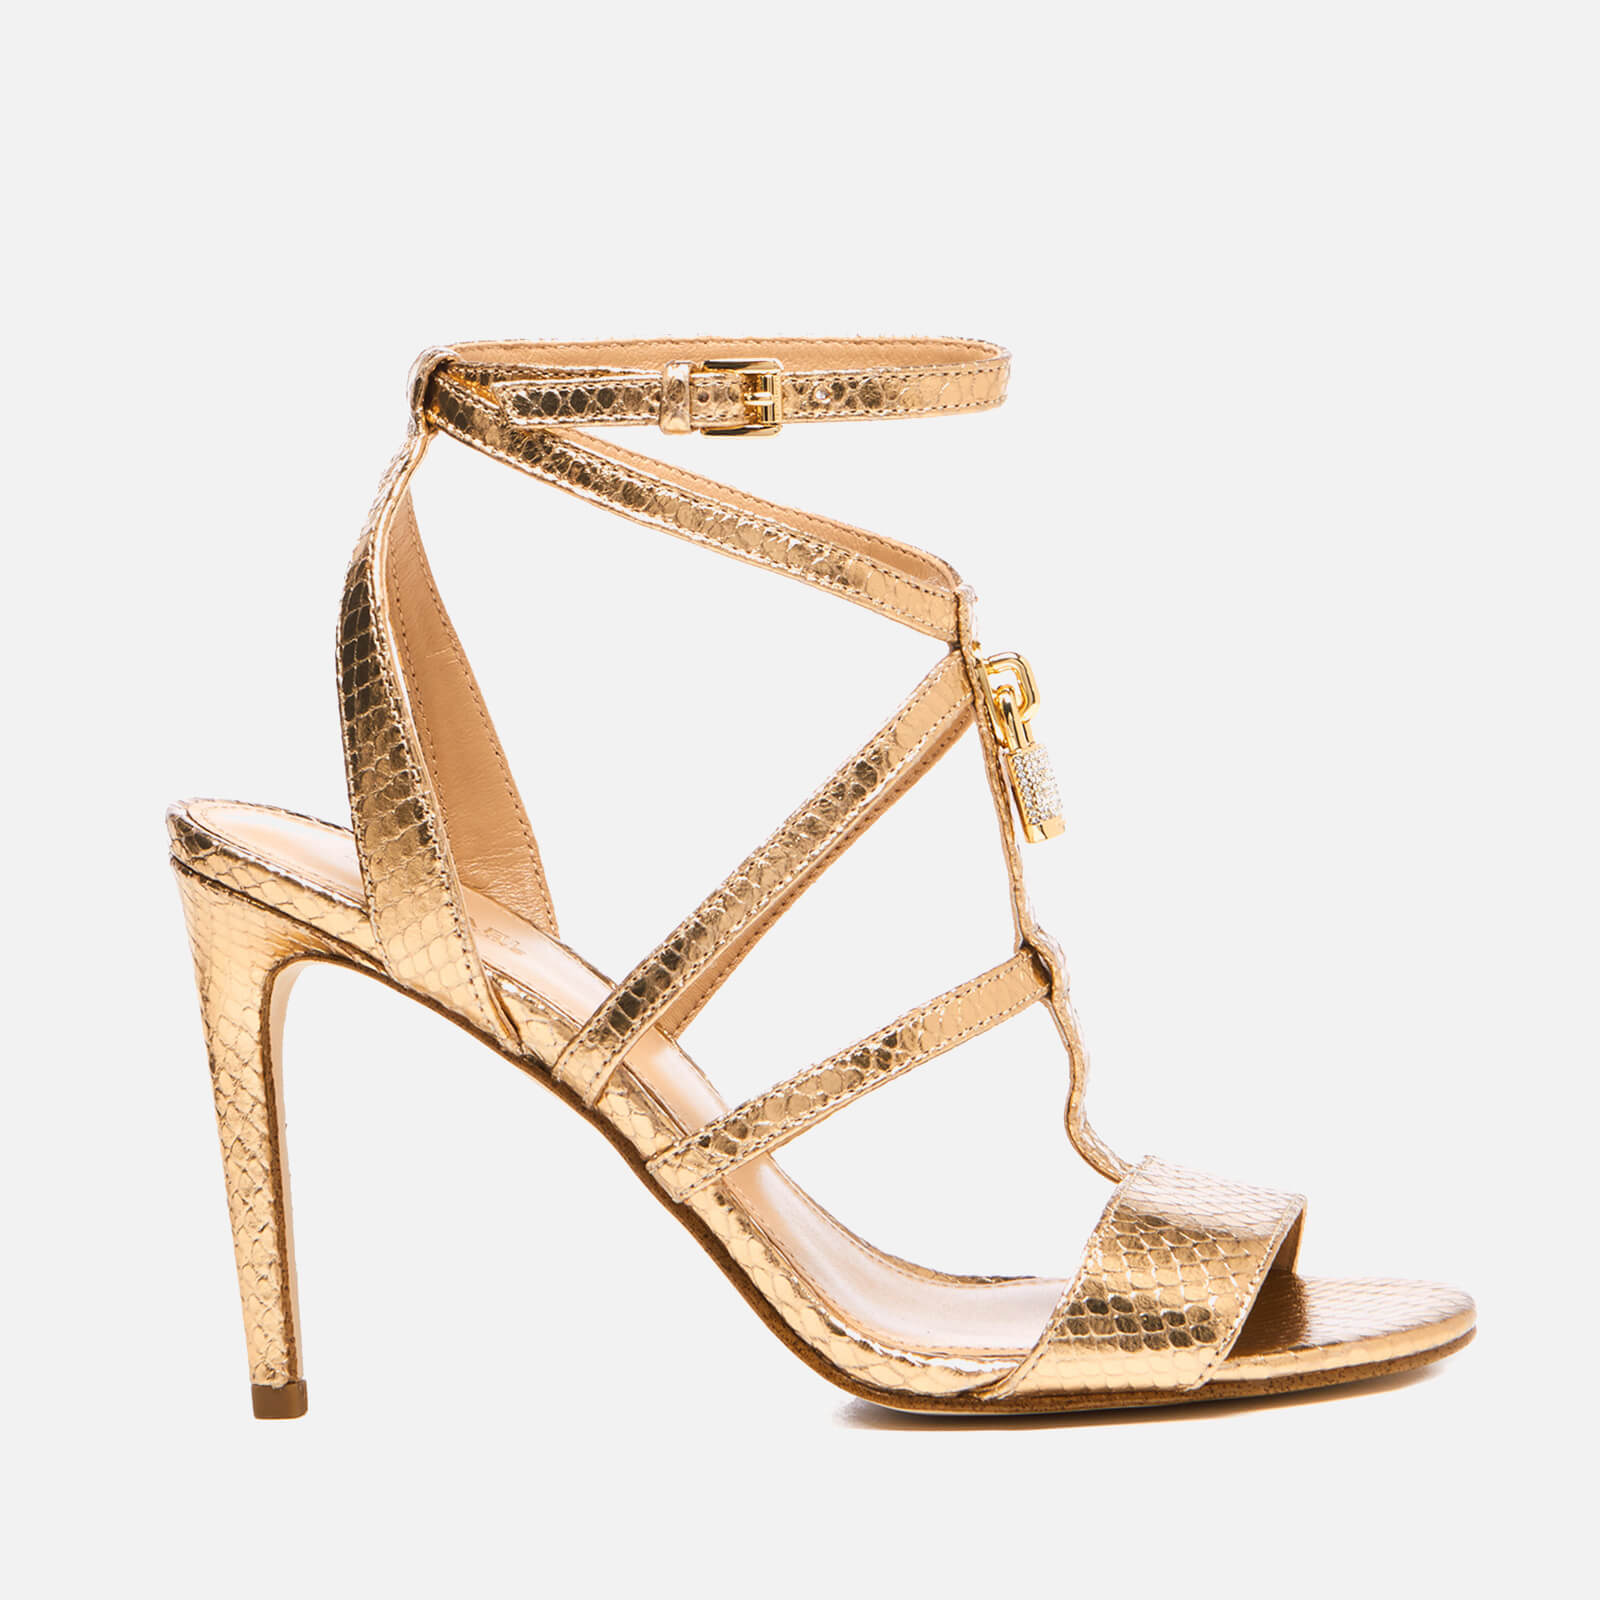 d219a84bfae2 MICHAEL MICHAEL KORS Women s Antoinette Leather Metallic Heeled Sandals - Pale  Gold - Free UK Delivery over £50